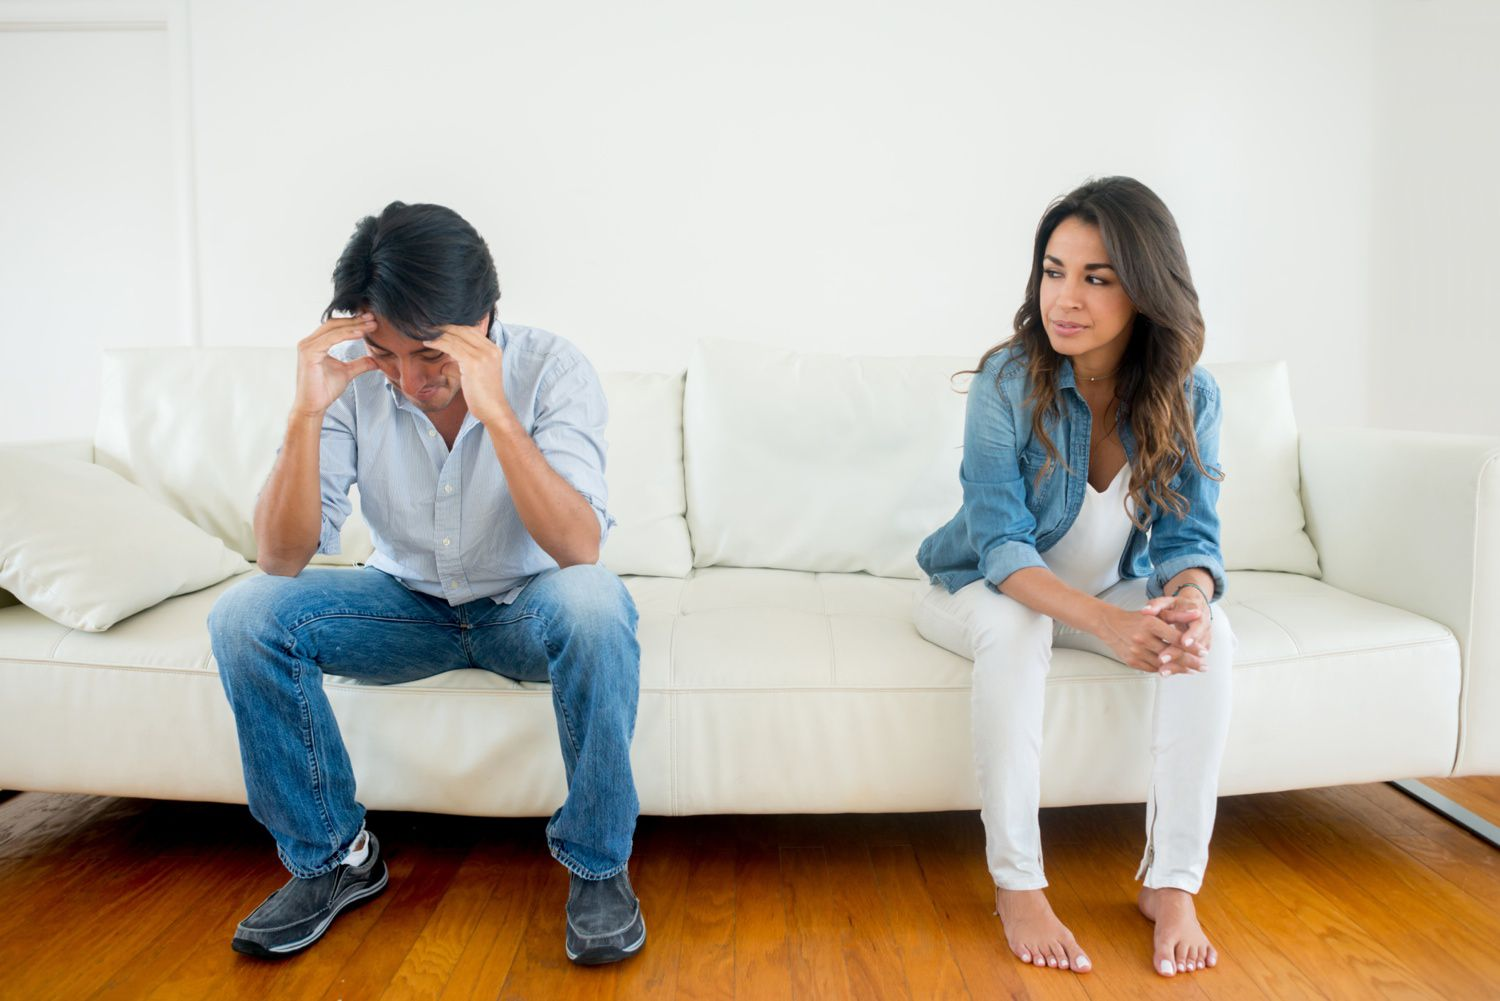 5 Financial Signs Your Relationship Might Be on the Rocks